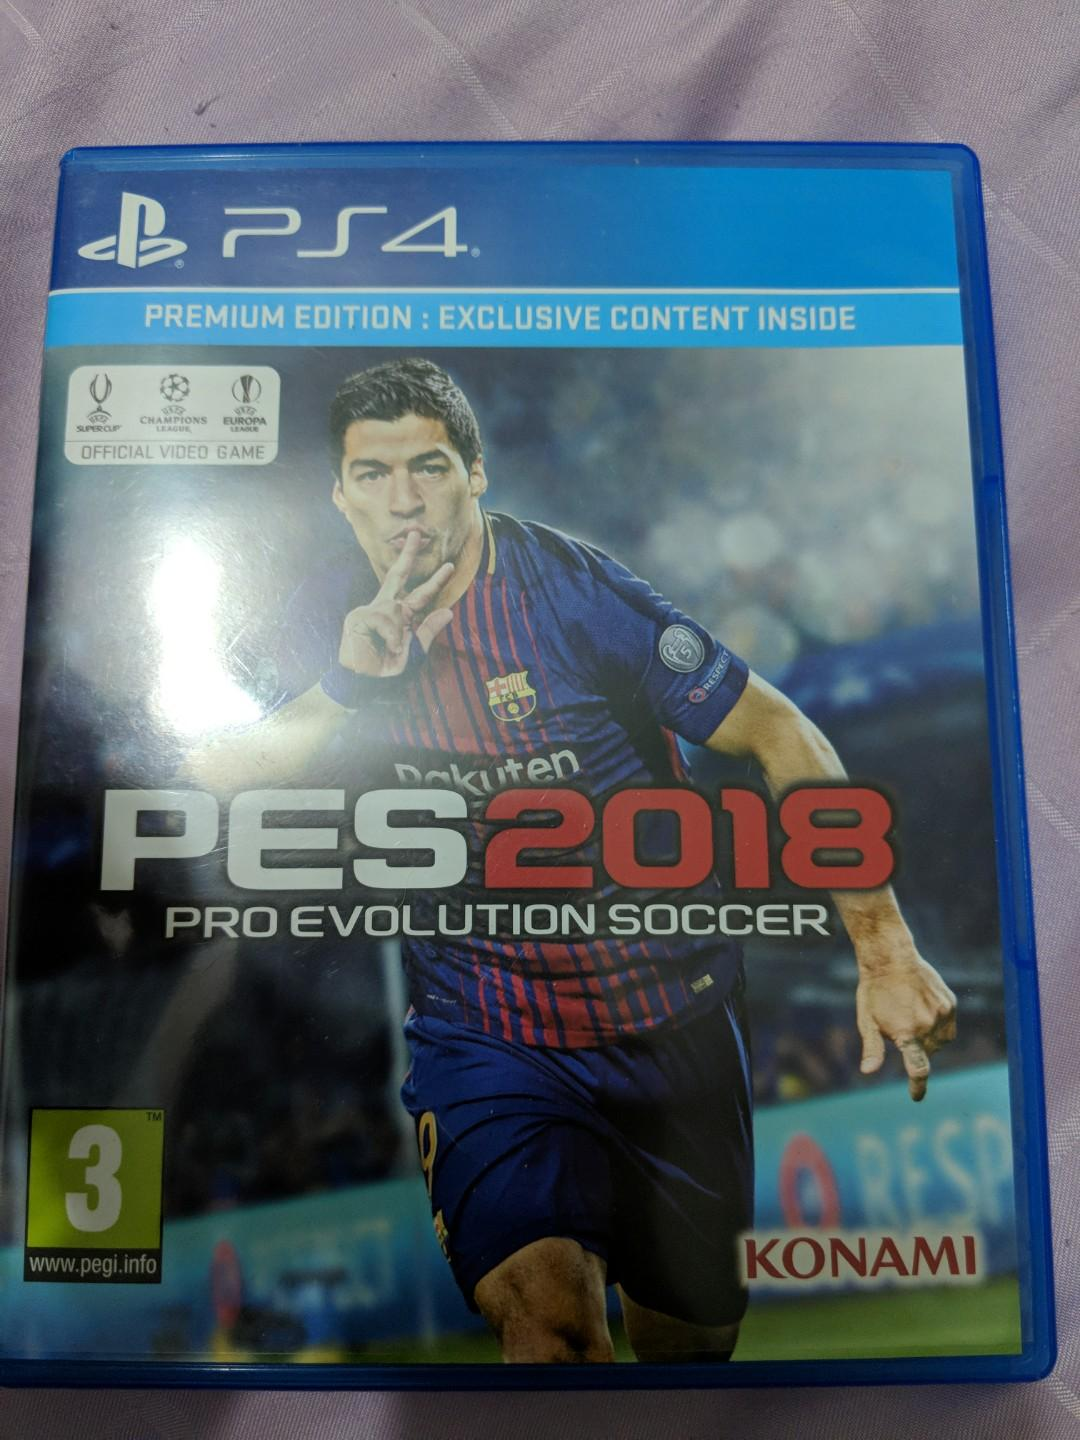 PES 2018 ps4, Toys & Games, Video Gaming, Video Games on